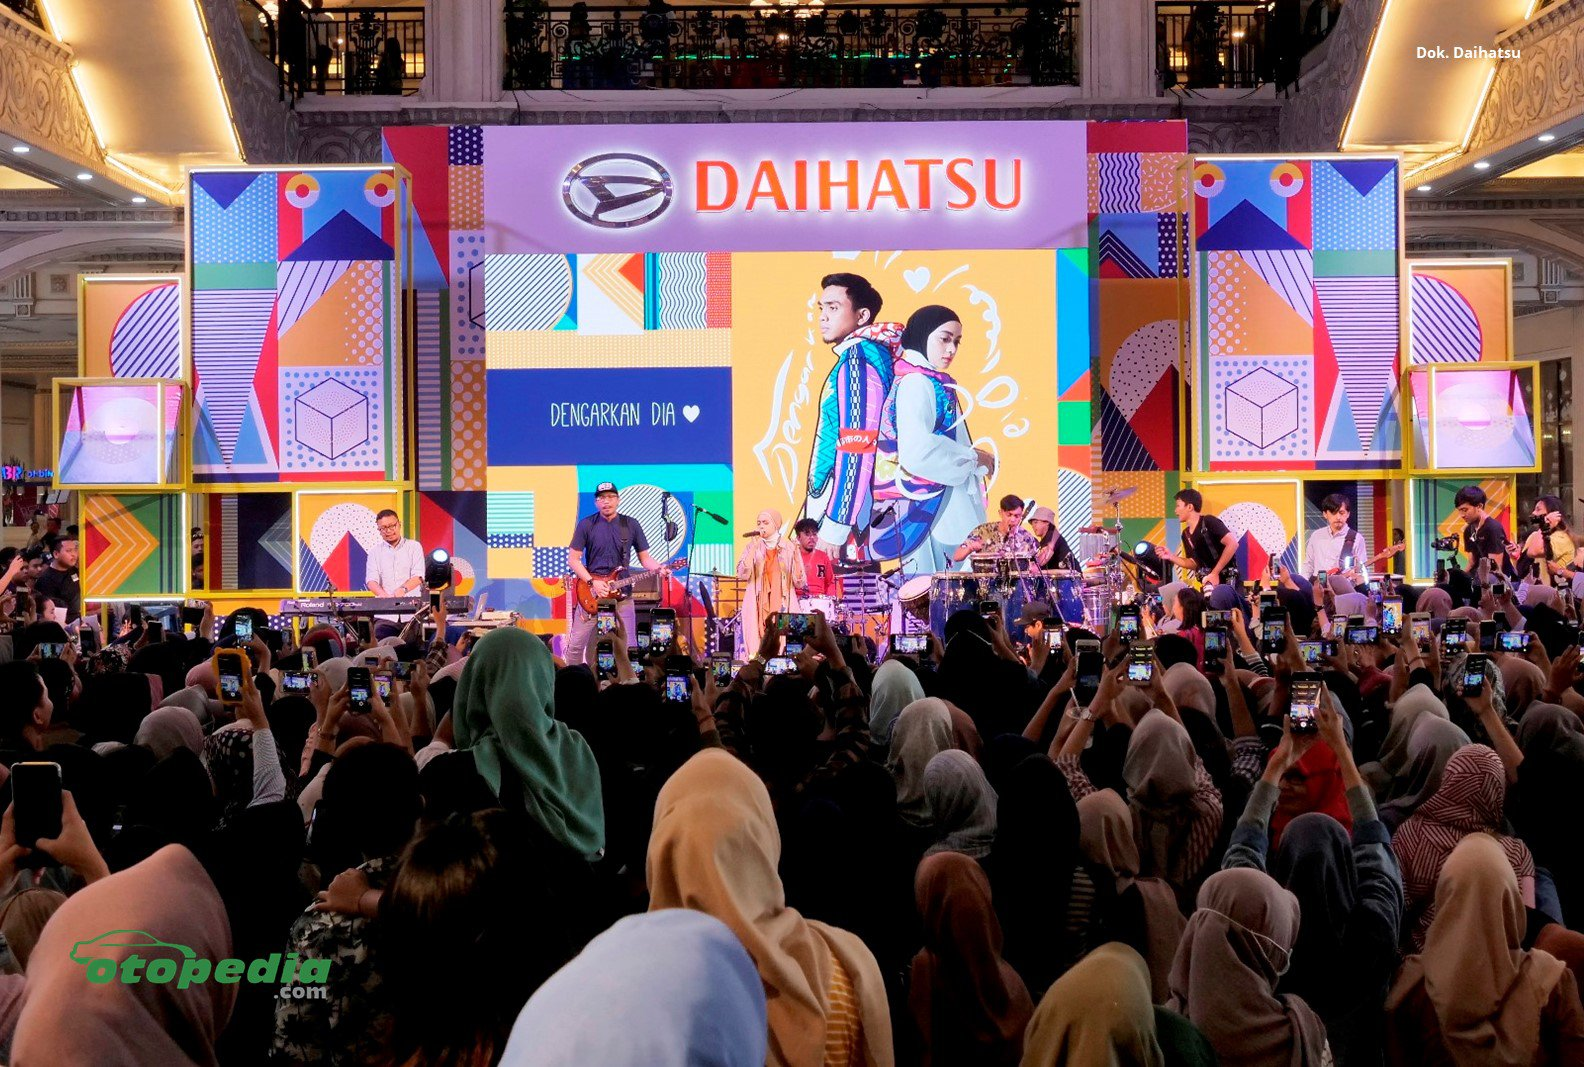 /media/images/Daihatsu-Urban-Fest.original.jpg